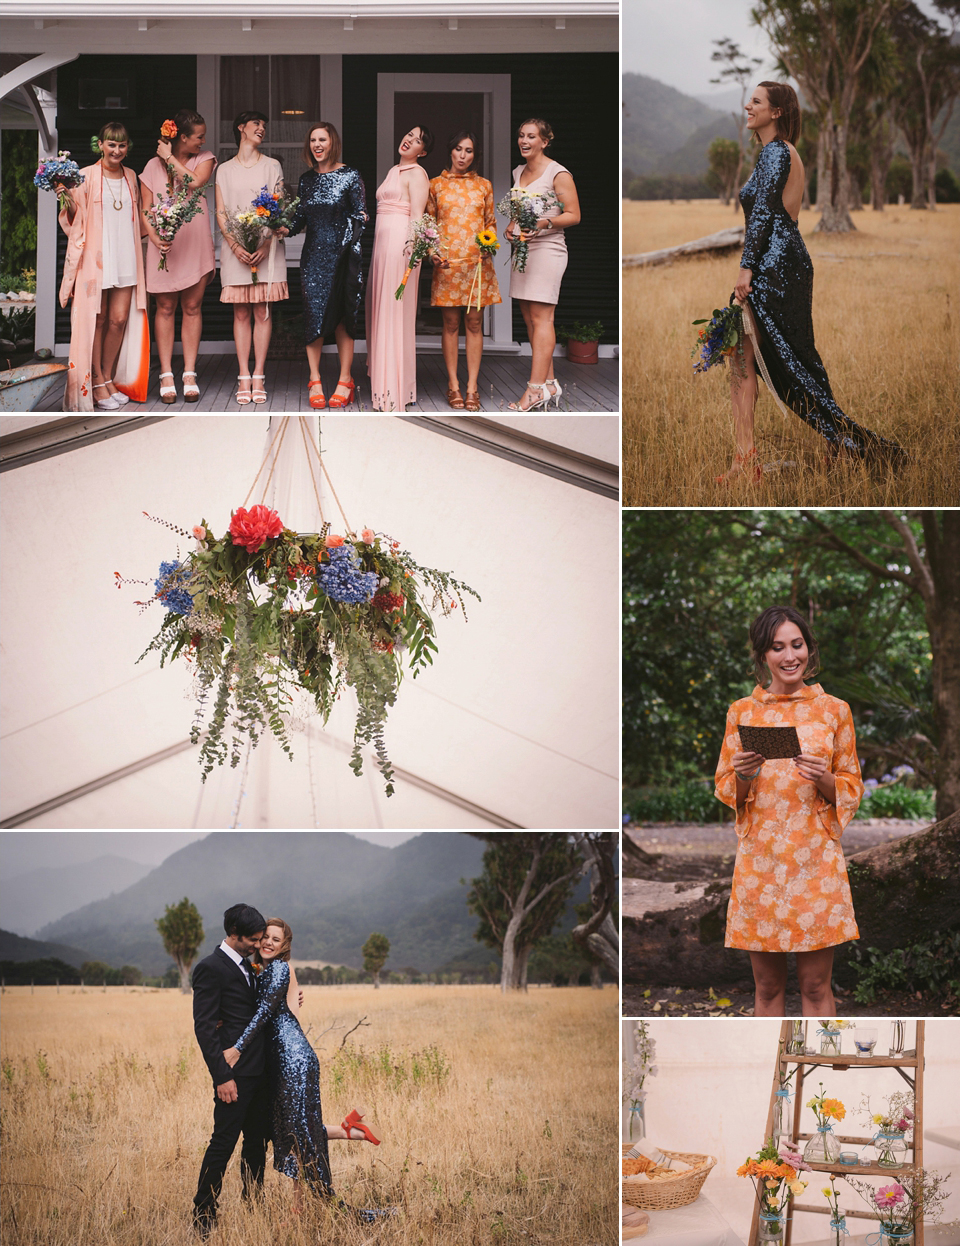 A Blue Sequin Dress for a Laid Back and Colourful Picnic Wedding (Weddings )